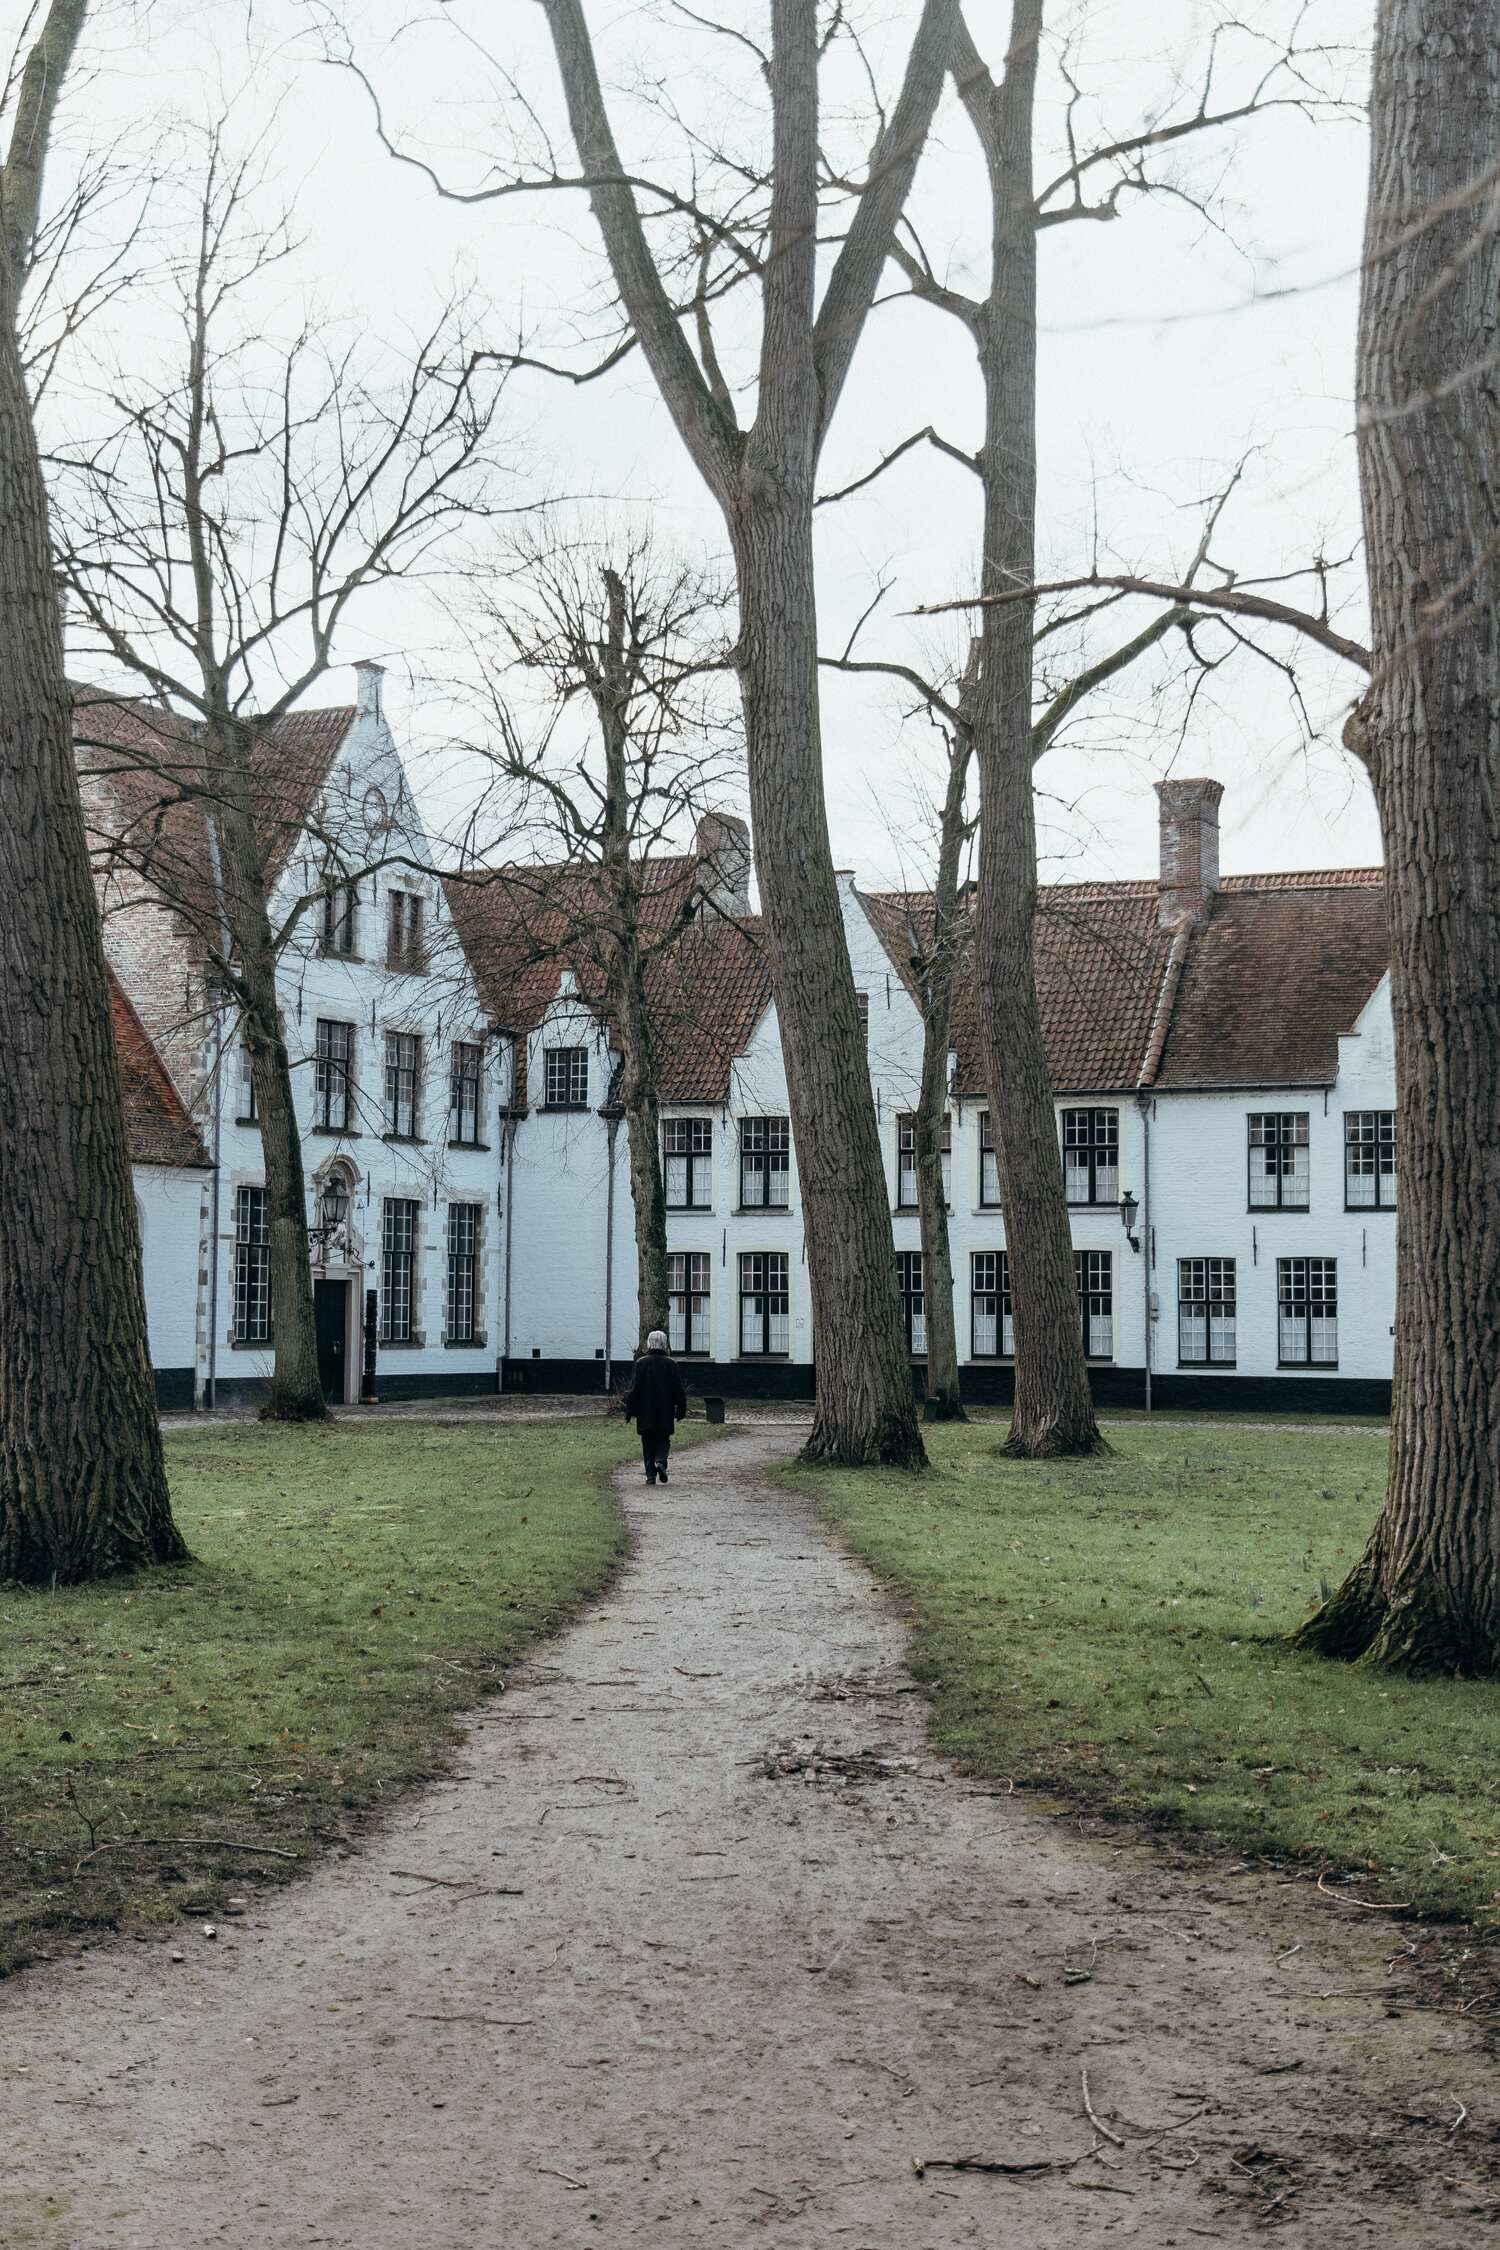 The Brugge Begijnhof is the home of the Bruges nuns and a must visit